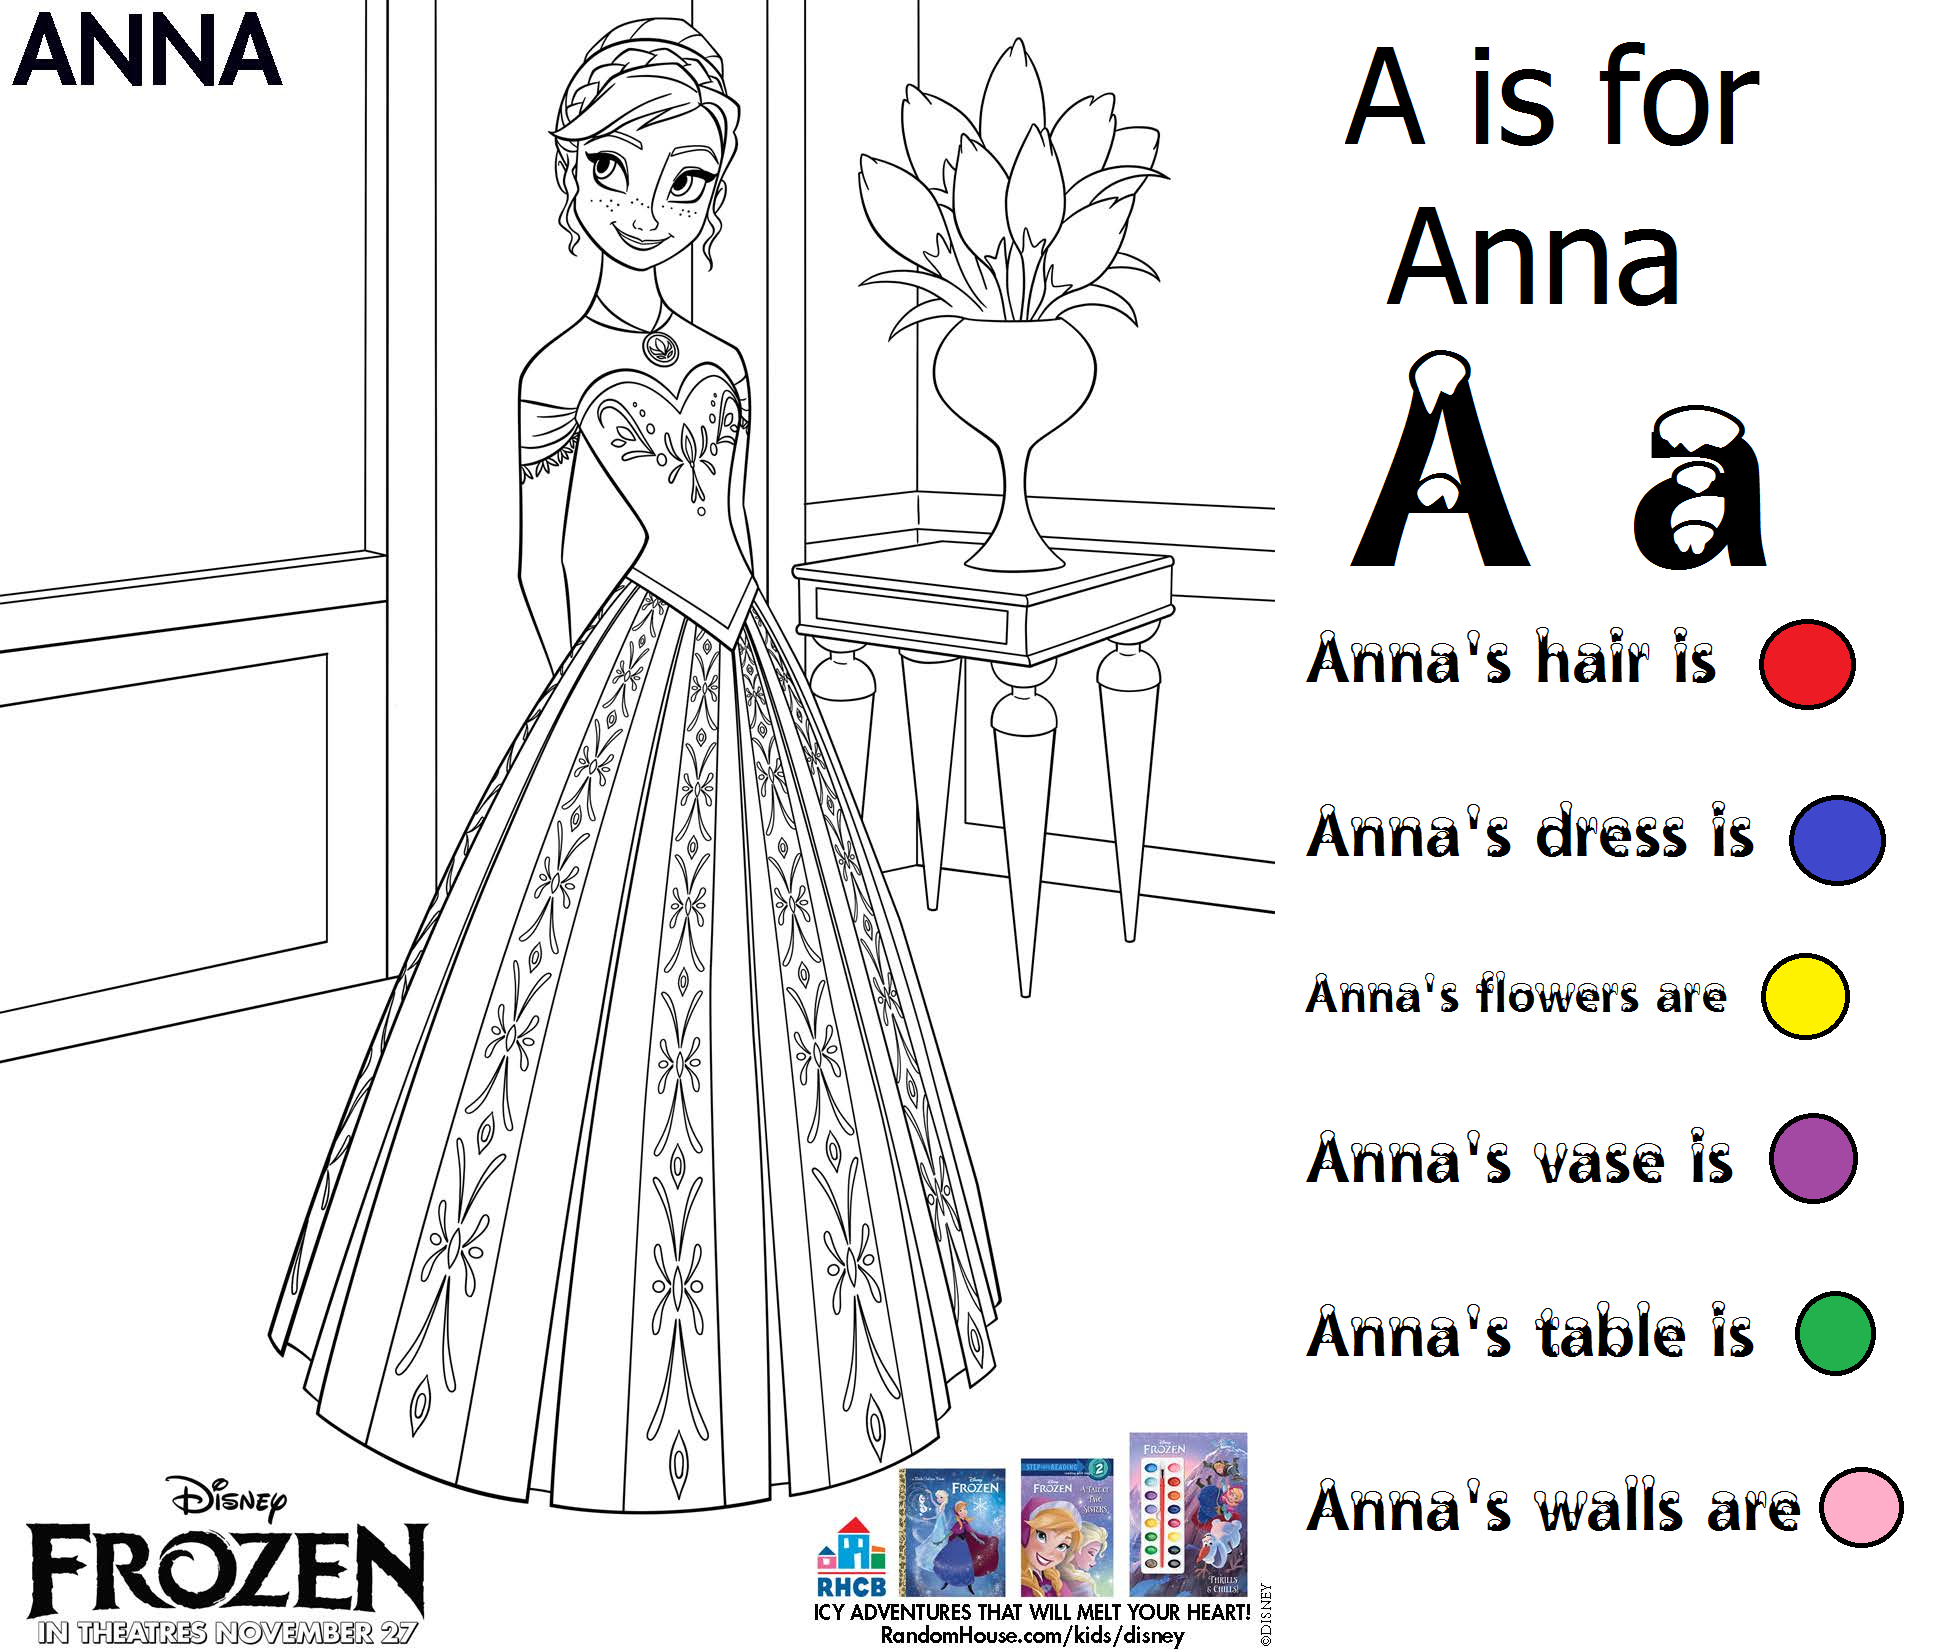 A Is For Anna Color Follow Directions Frozen Preschool For